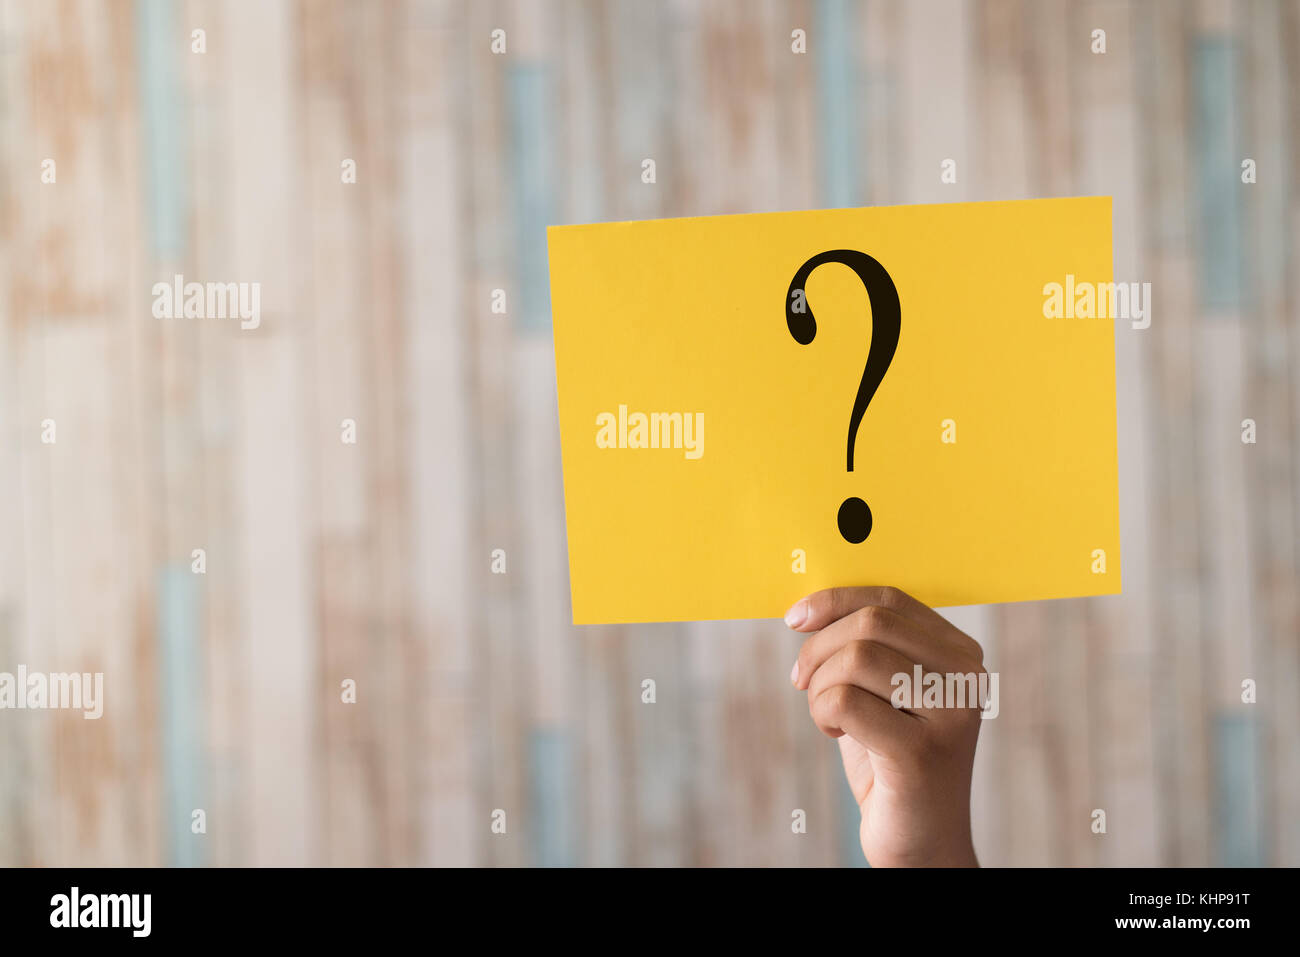 hand holding a paper note with question mark.question mark written on paper - Stock Image